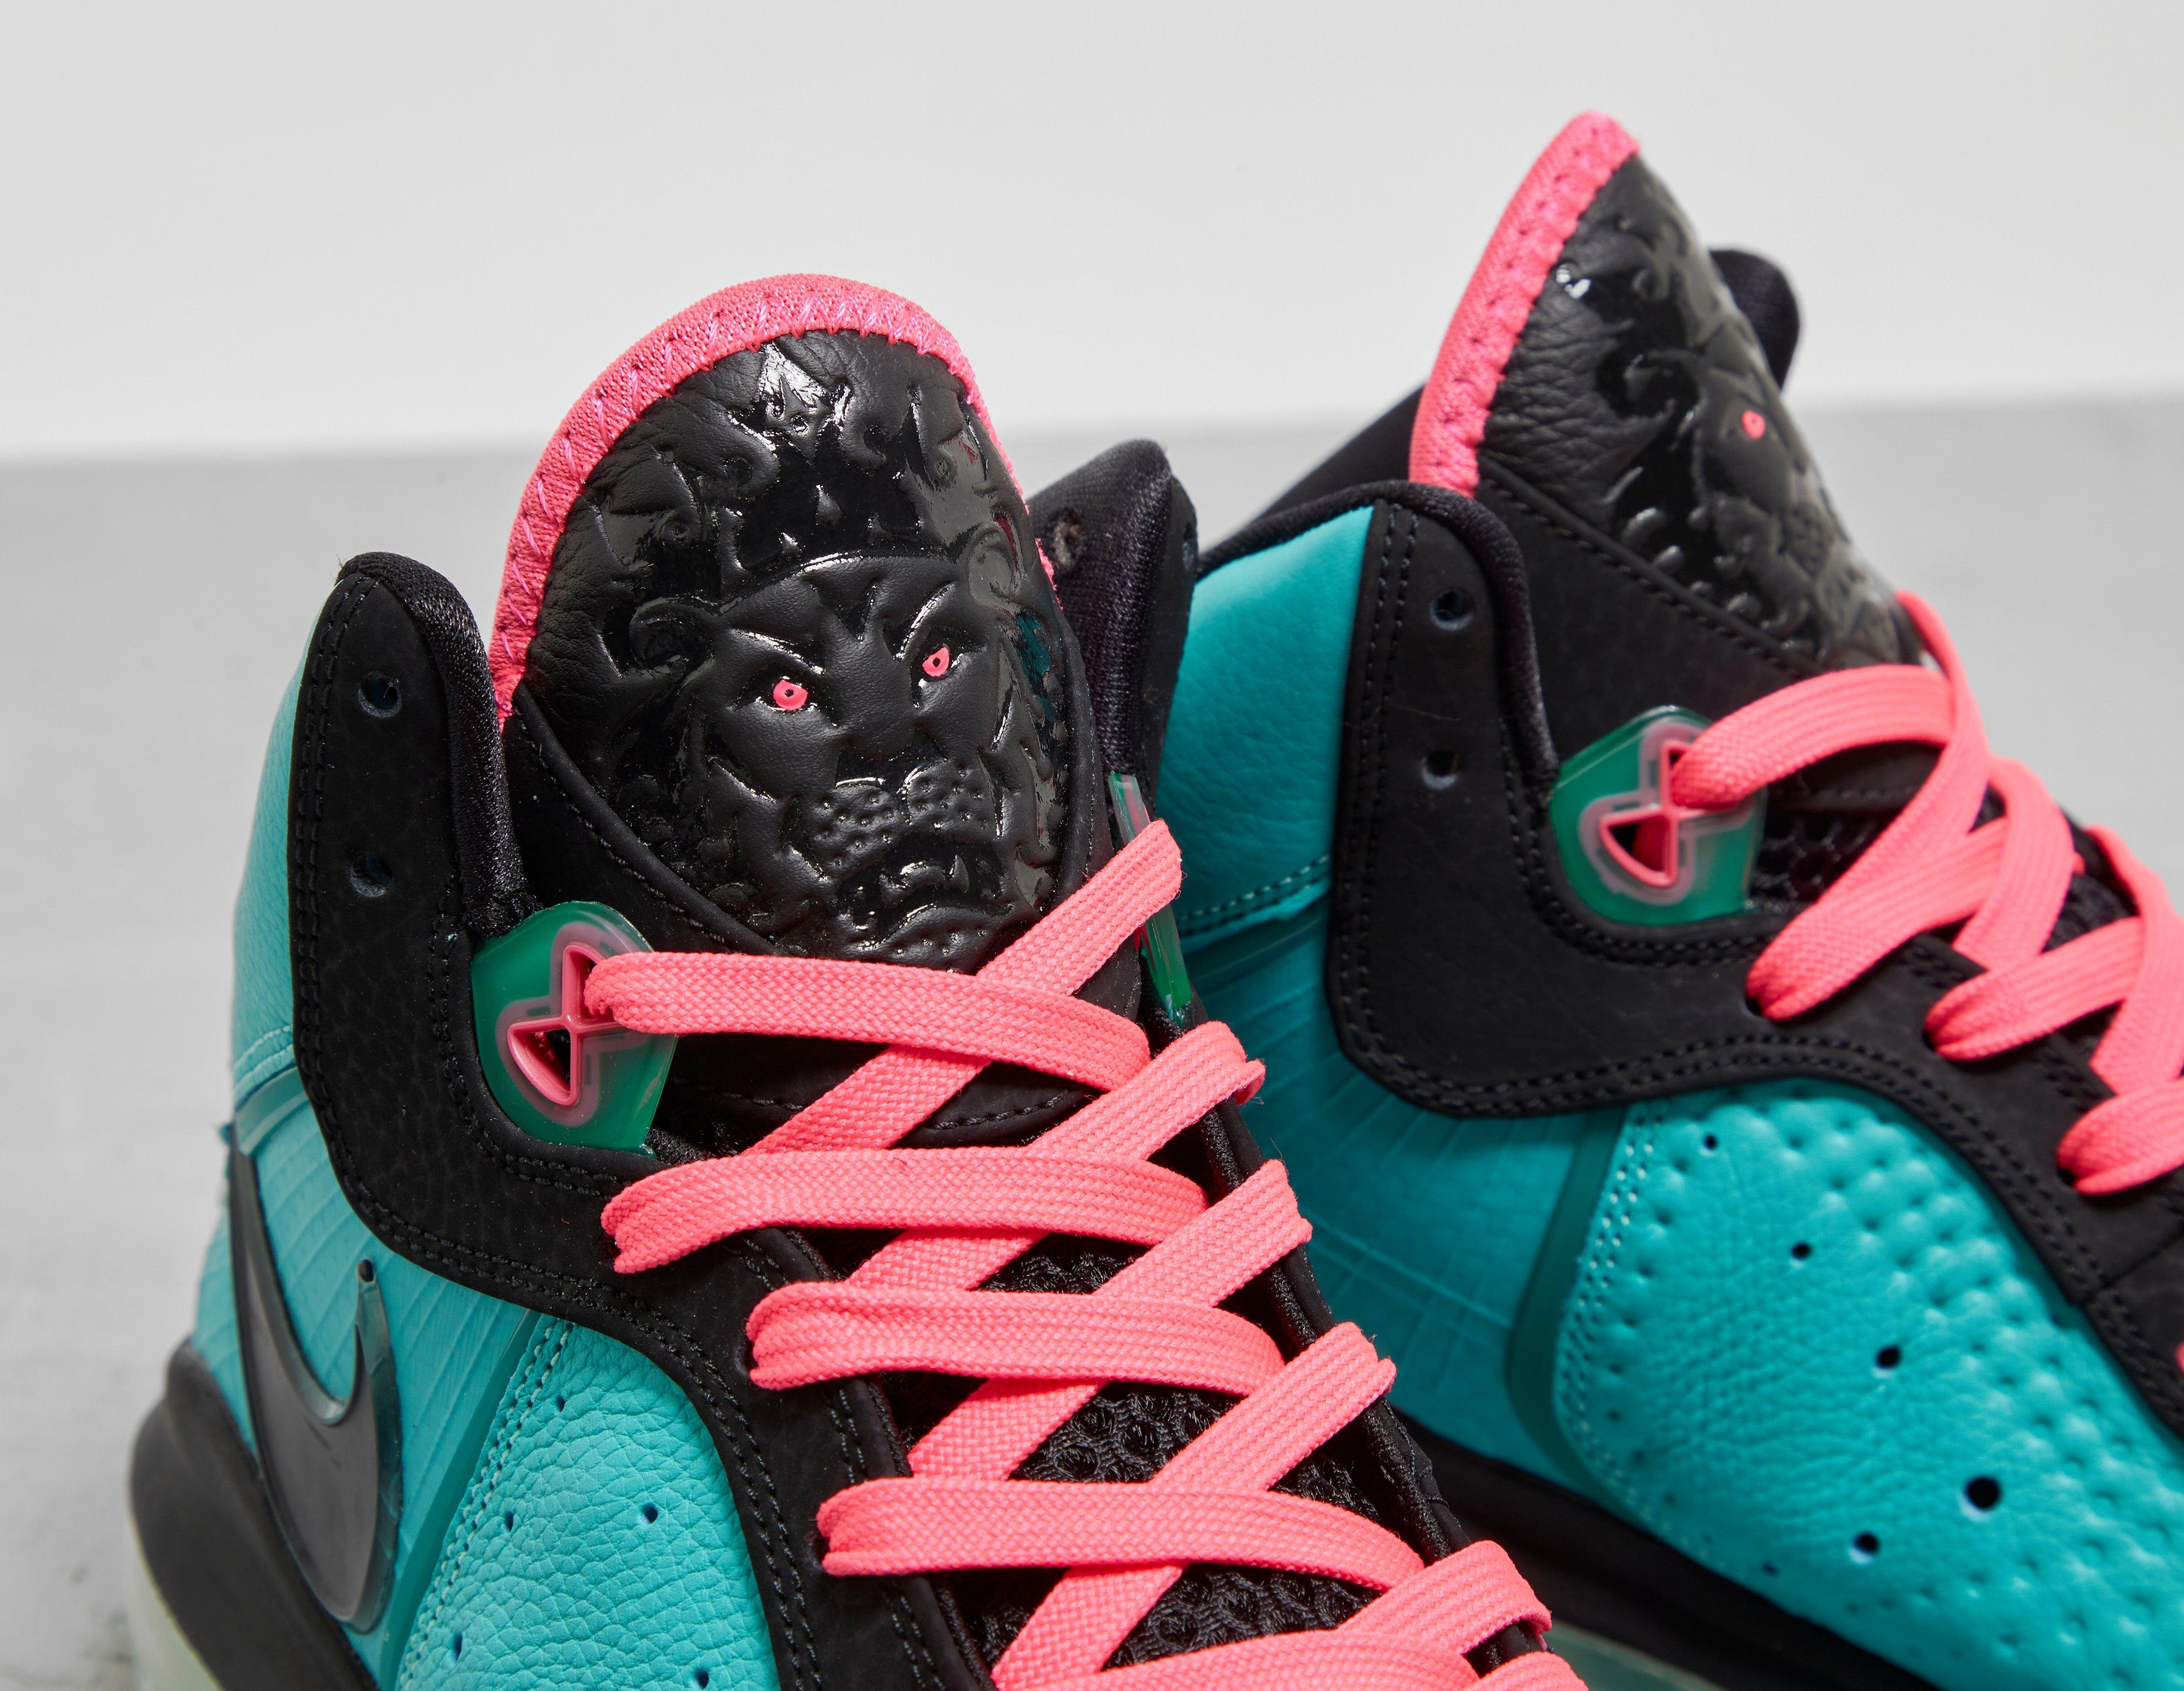 Nike LeBron 8 'South Beach' 2021 CZ0328-400 Tongue